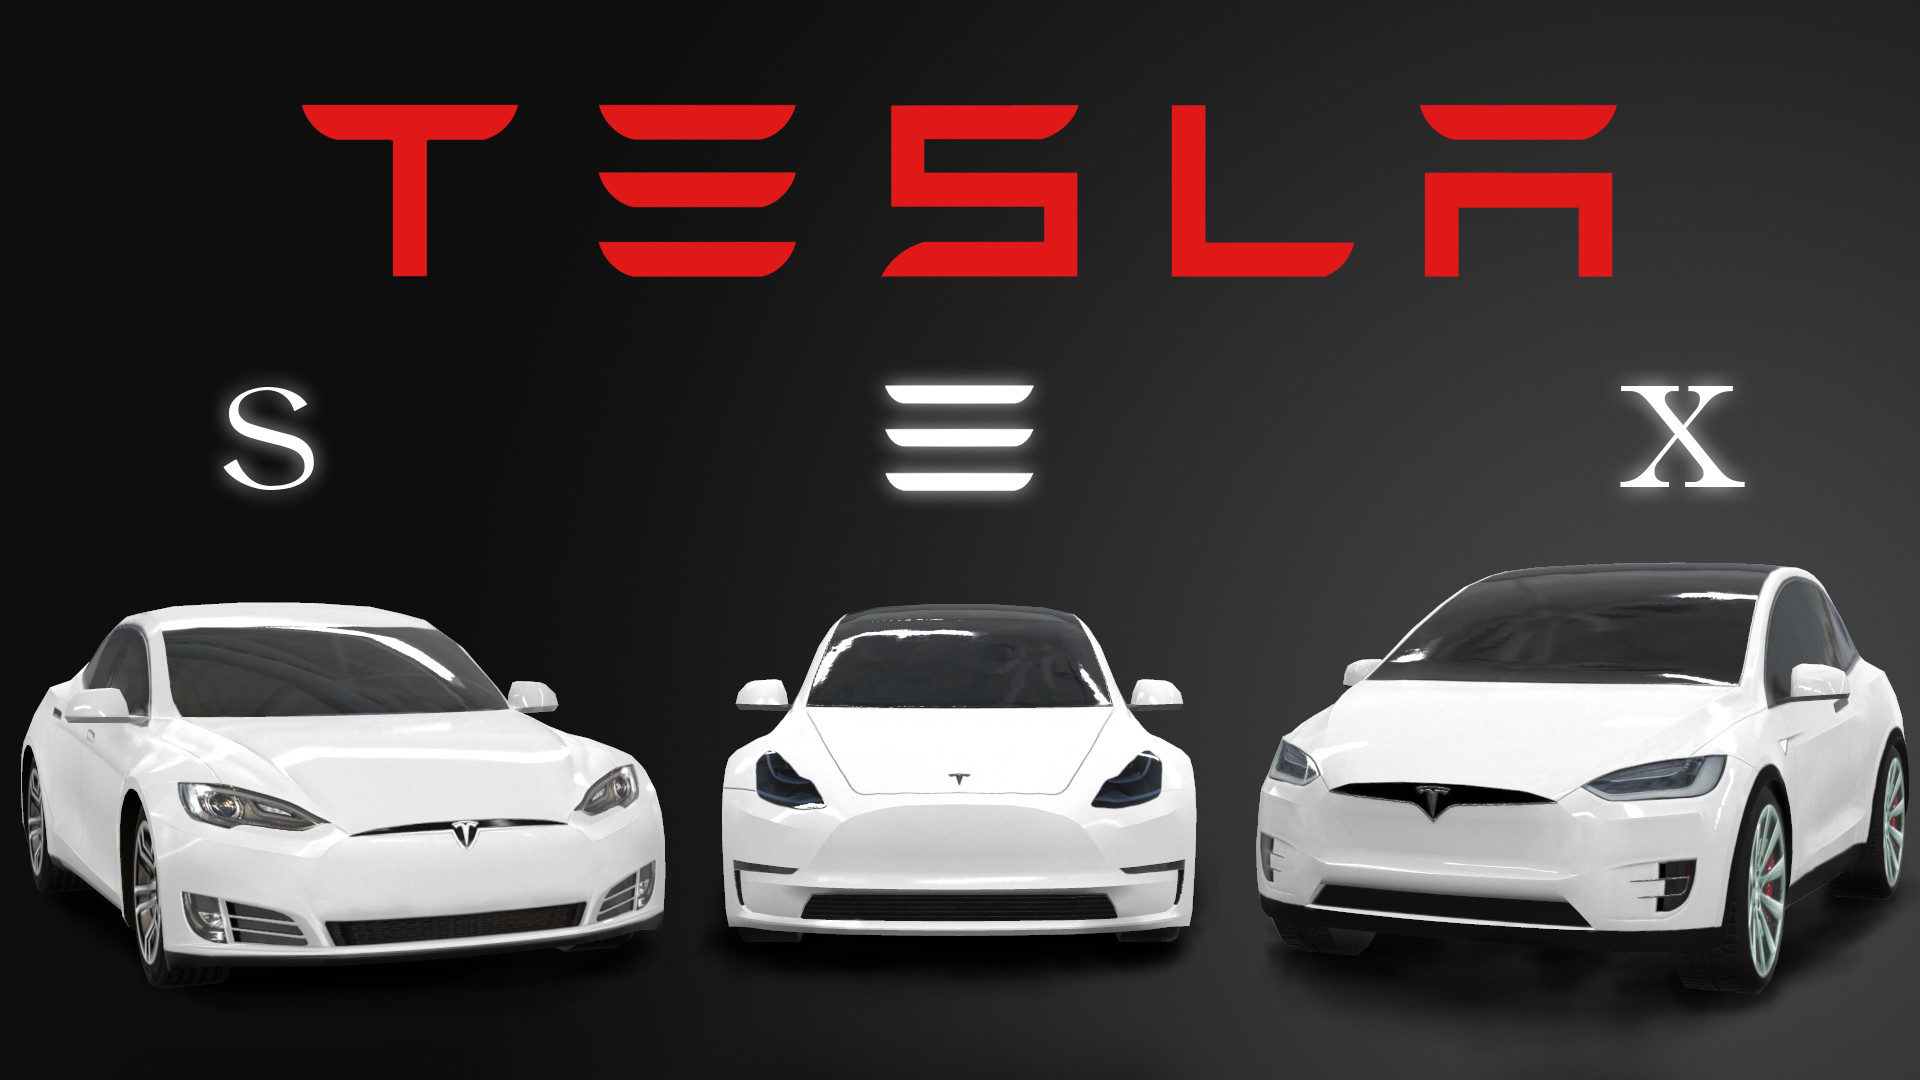 Tesla Cuts Price for Model 3, Model S and Model X